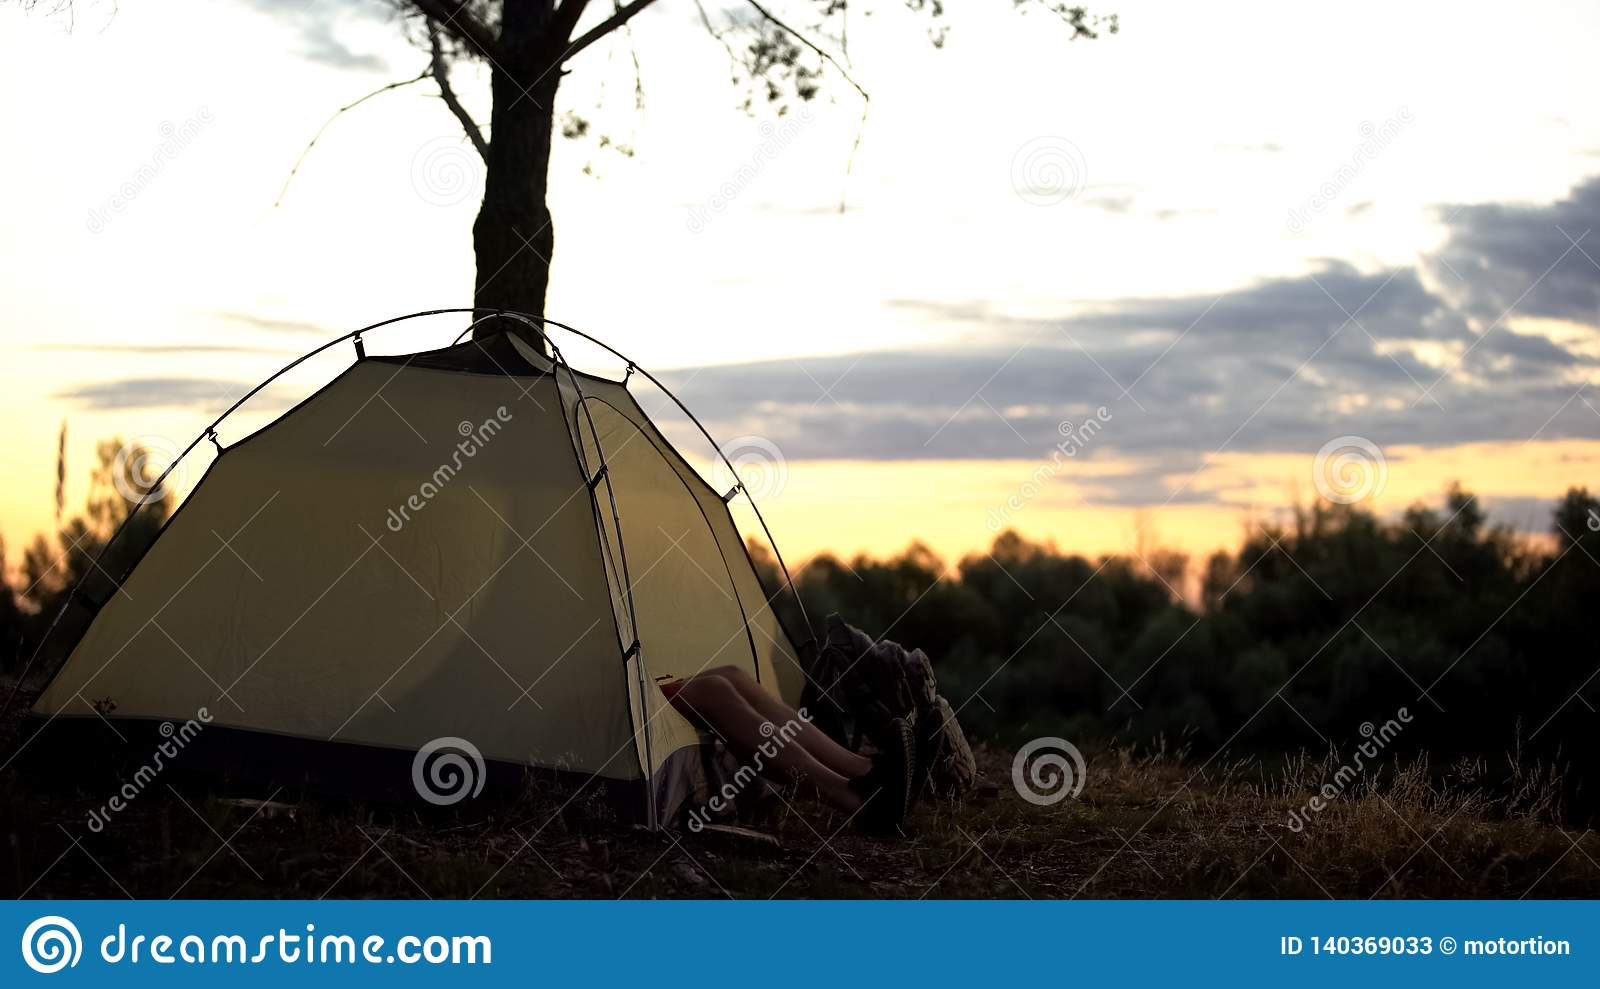 Camper resting in tent early in picturesque place, overnight in wild, sunrise